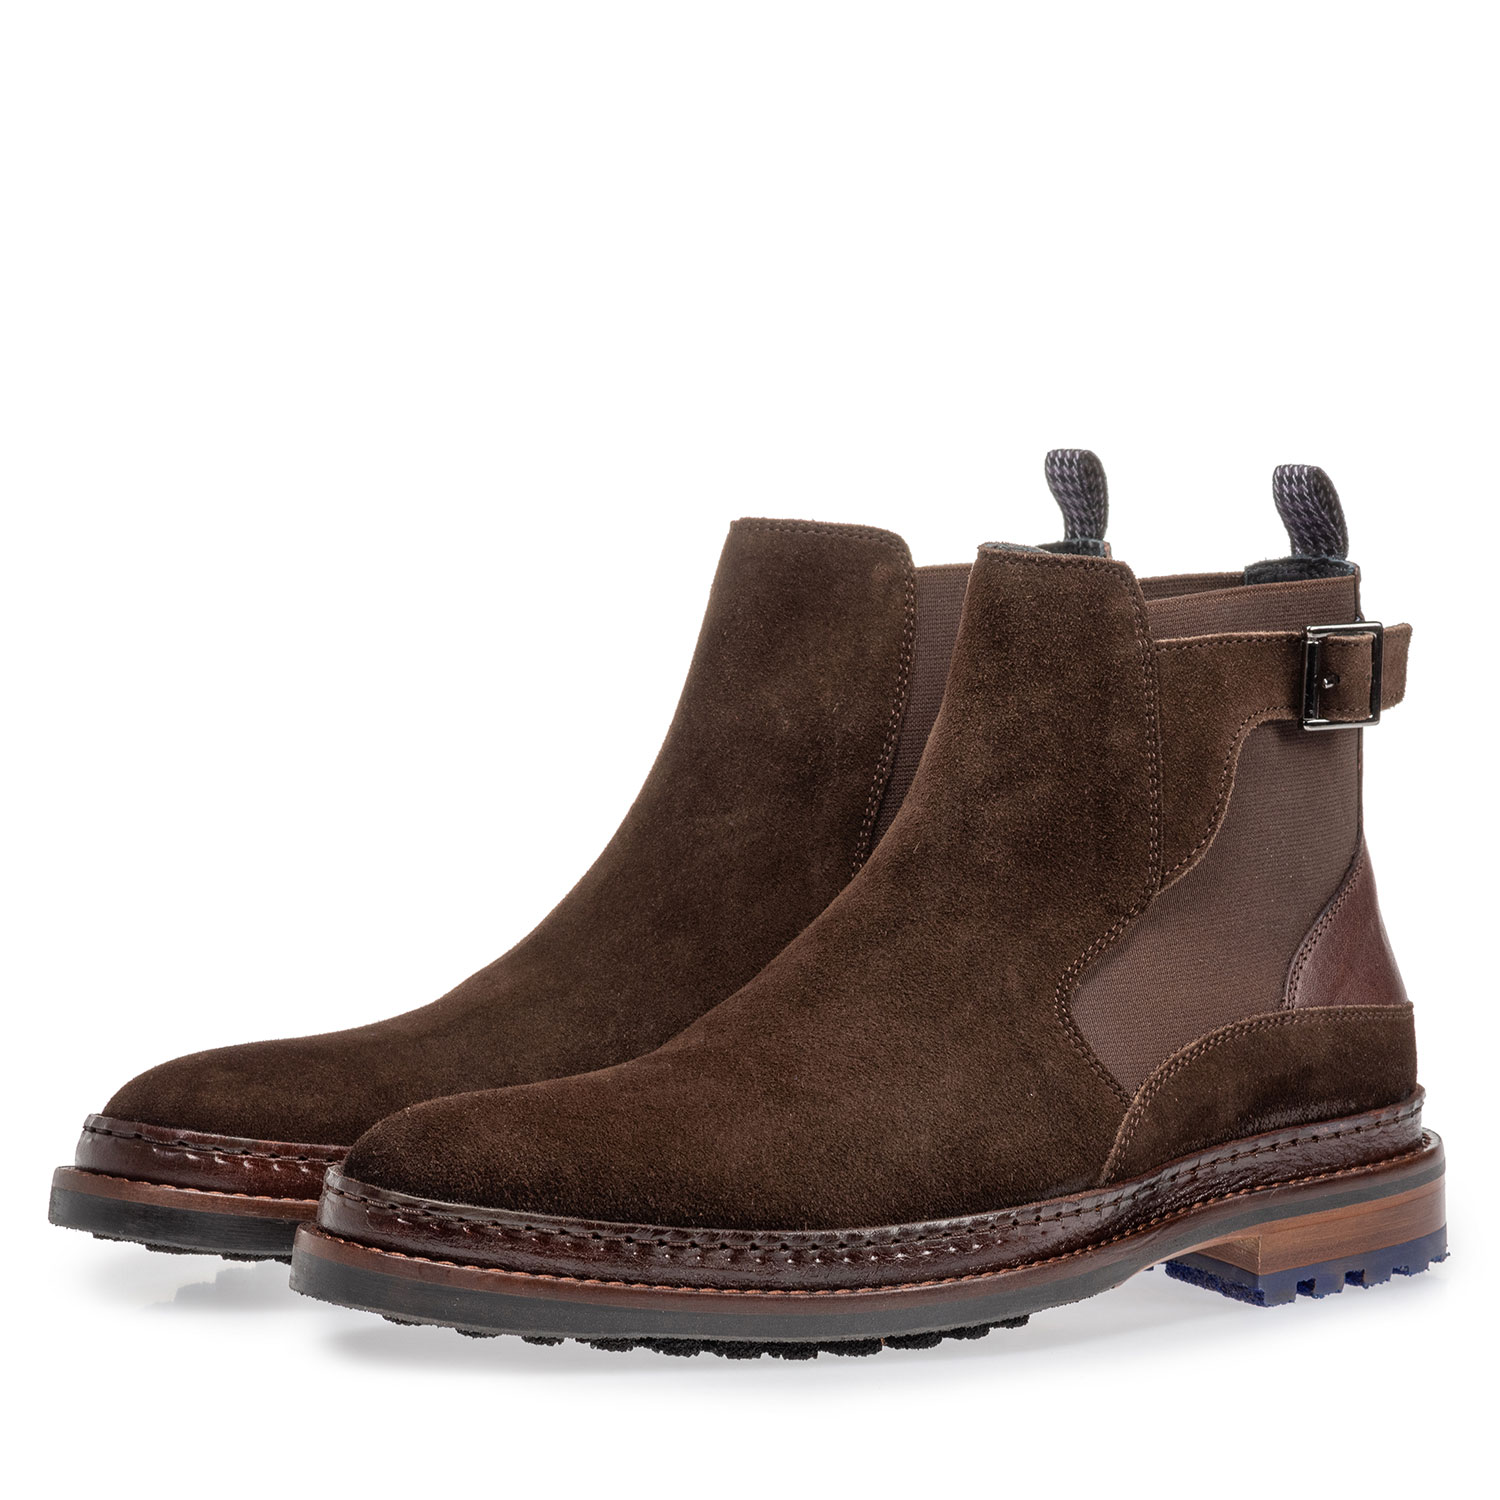 10529/06 - Chelsea boot dark brown suede leather